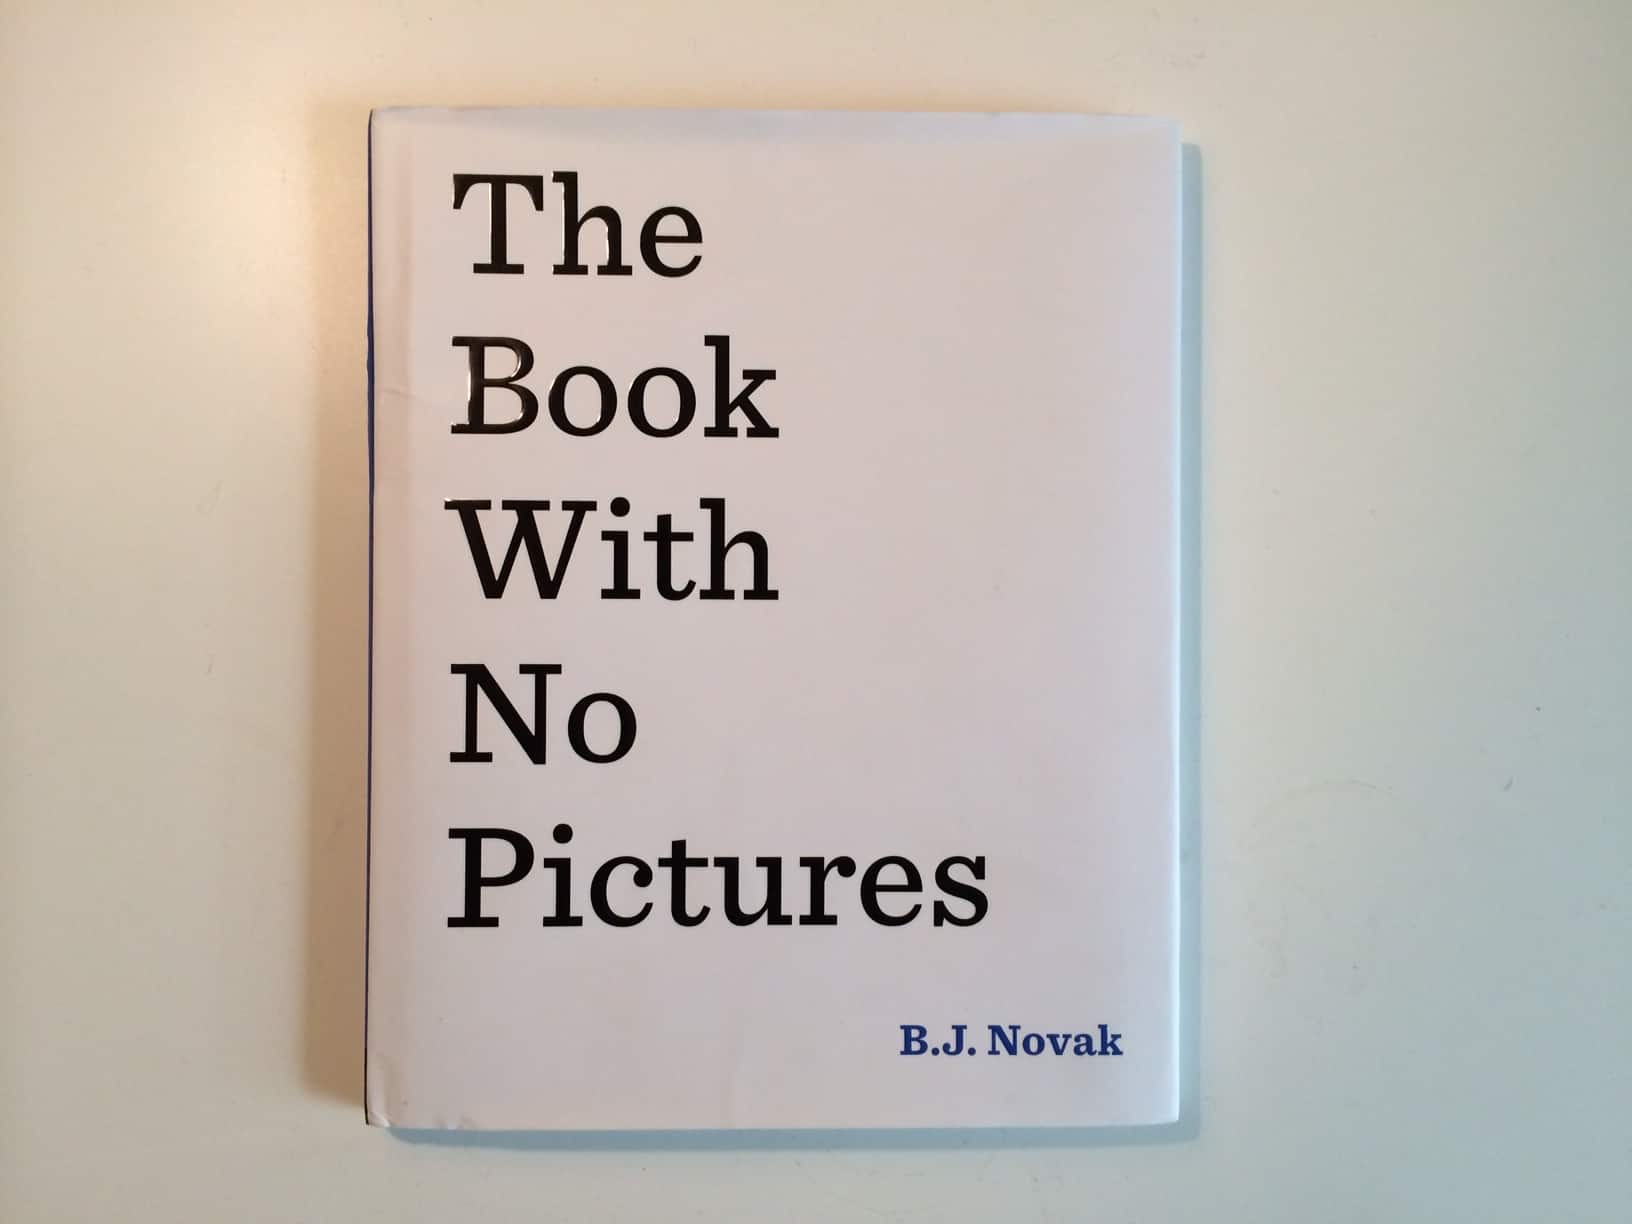 The Book with No Pictures - B.J. Novak - $4.68 @ Amazon